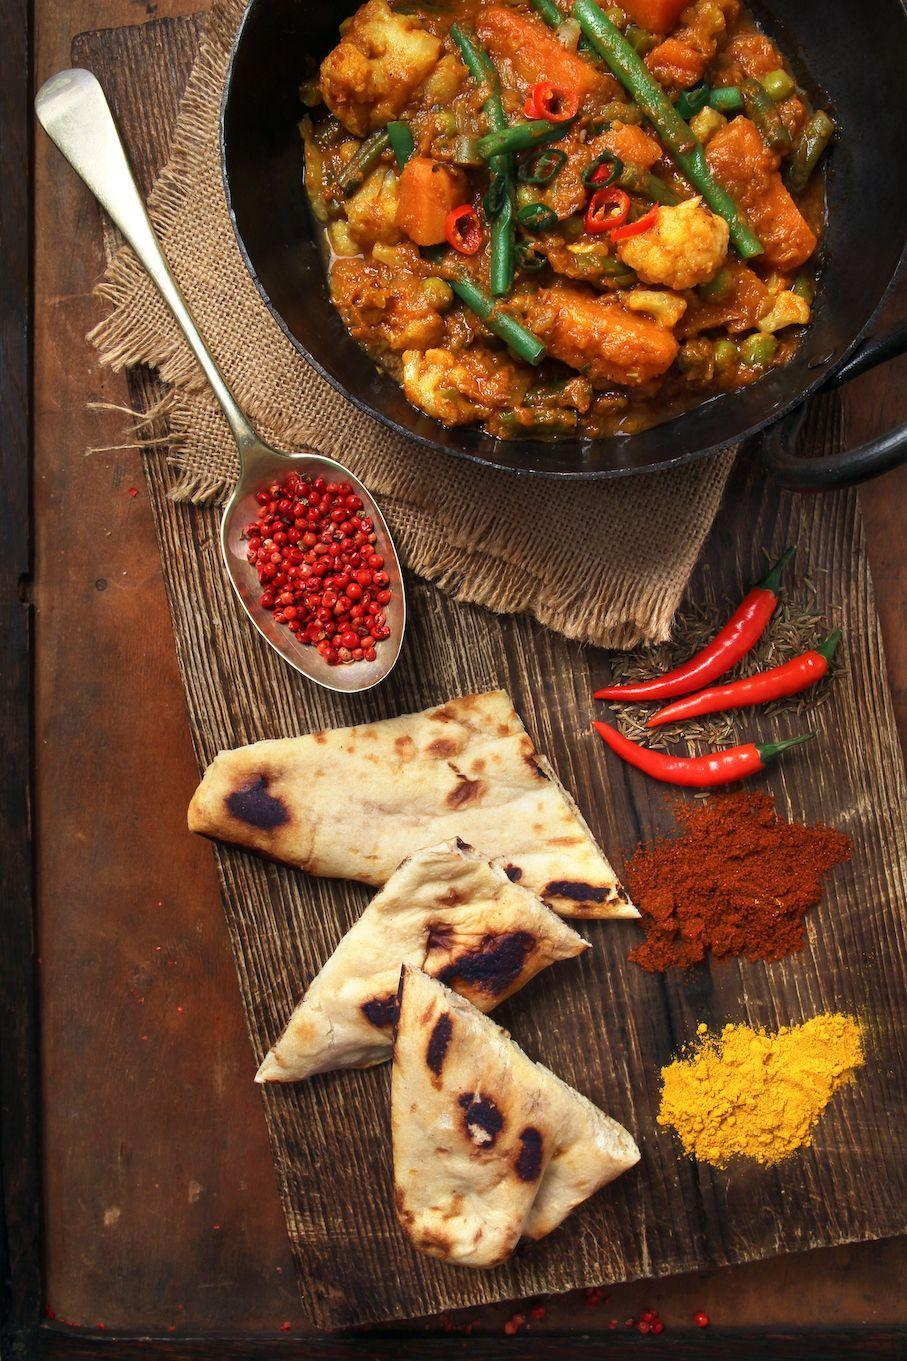 """<p>Learn how to make hundreds of delicious Indian dishes using just nine repeatable cooking patterns.</p><p><strong>Duration</strong>: Four hours on-demand video</p><p>£11.99</p><p><a class=""""link rapid-noclick-resp"""" href=""""https://go.redirectingat.com?id=127X1599956&url=https%3A%2F%2Fwww.udemy.com%2Fcourse%2Findianculinaryworld%2F&sref=https%3A%2F%2Fwww.harpersbazaar.com%2Fuk%2Fculture%2Flifestyle_homes%2Fg36582849%2Fbest-online-learning-courses%2F"""" rel=""""nofollow noopener"""" target=""""_blank"""" data-ylk=""""slk:BUY NOW"""">BUY NOW </a></p>"""